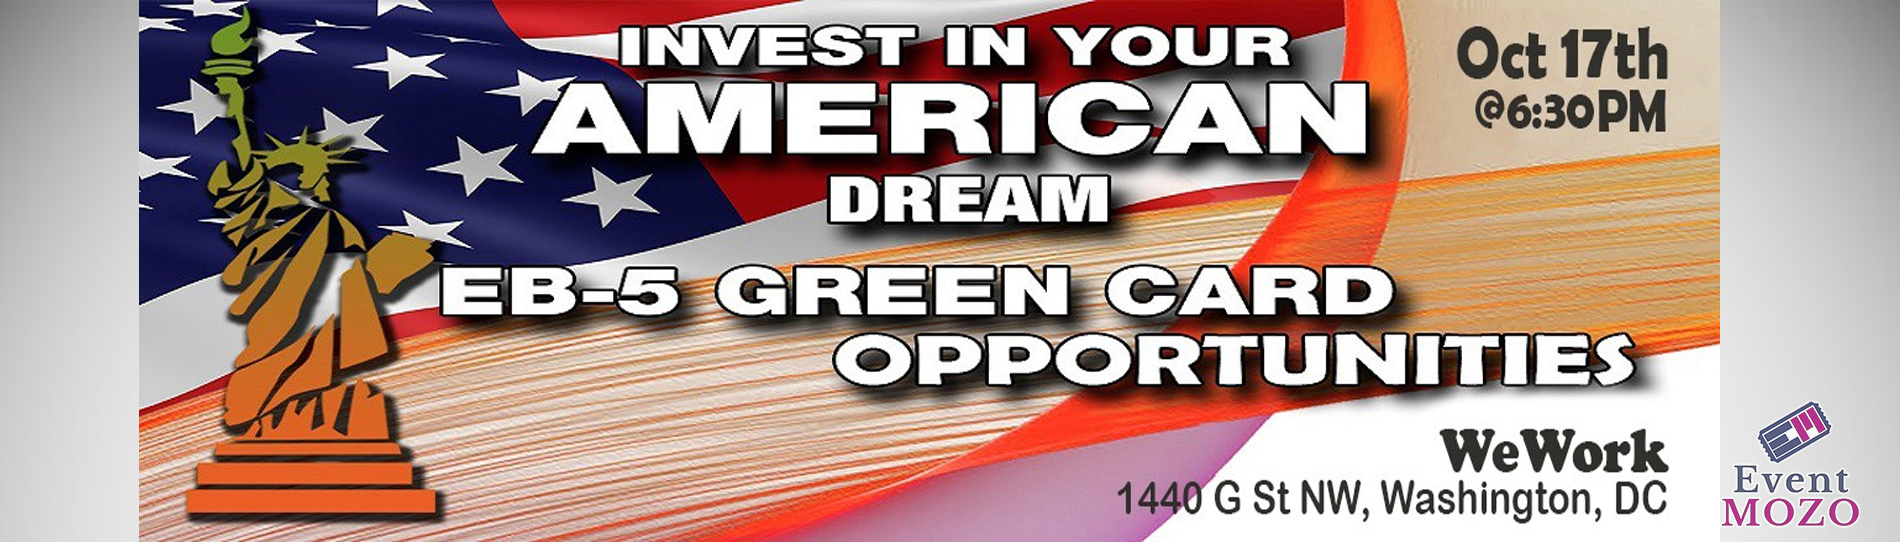 EventMozo SPECIAL EB-5 Green Card OPPORTUNITIES - Invest In Your Ame....